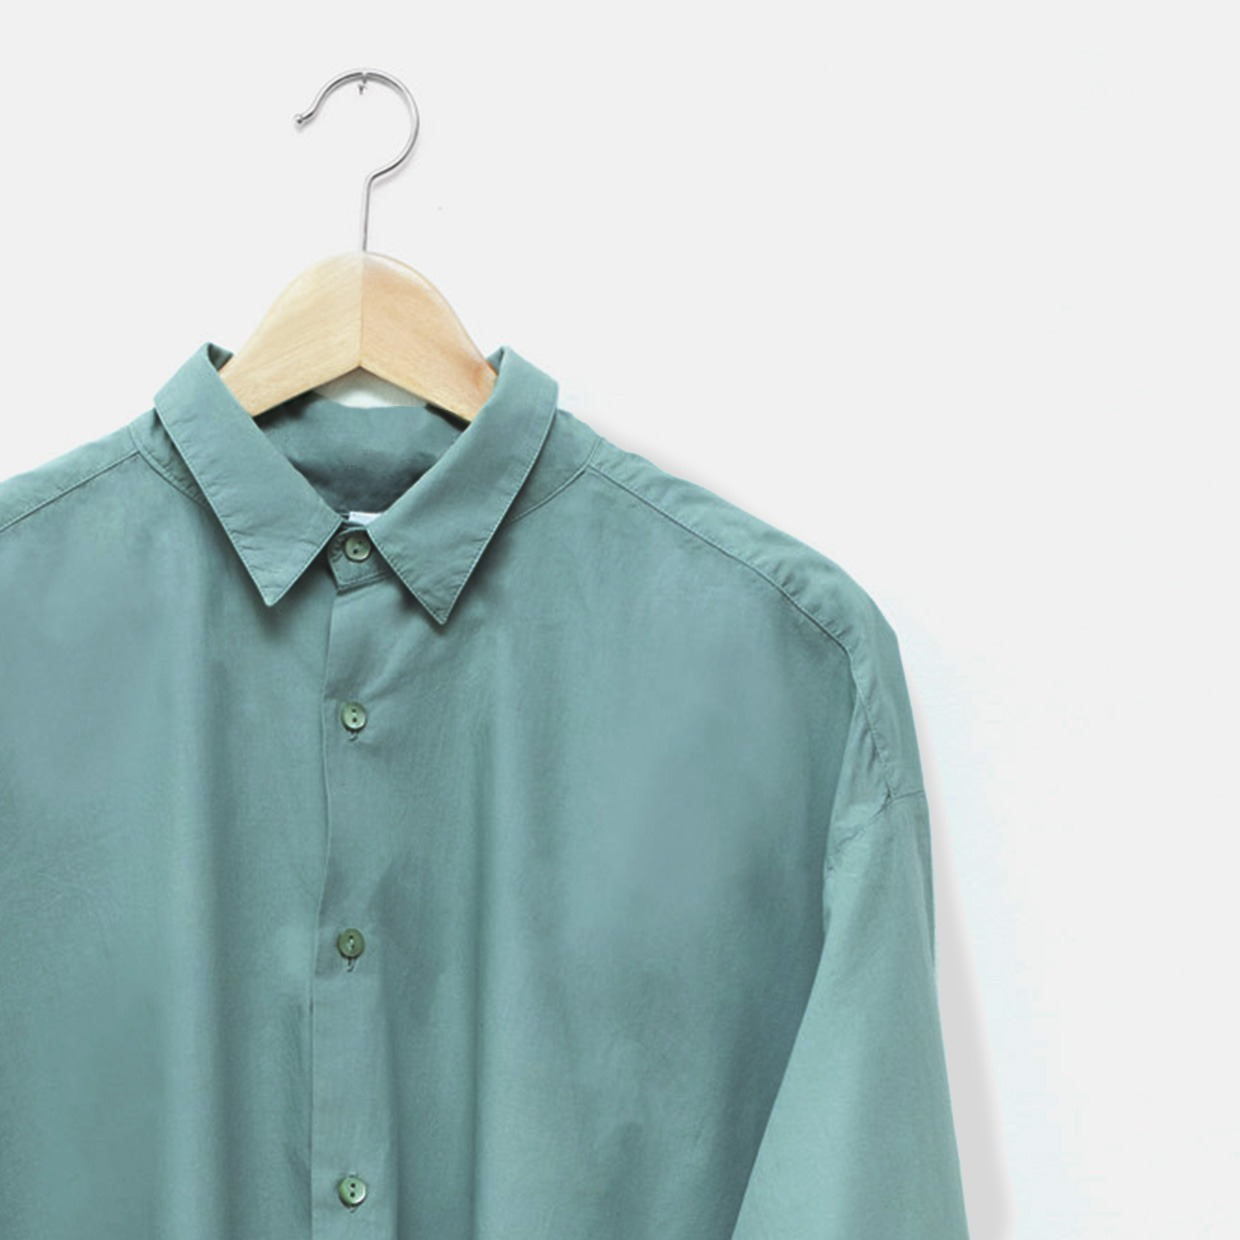 The PERFECT OVERSIZE shirt